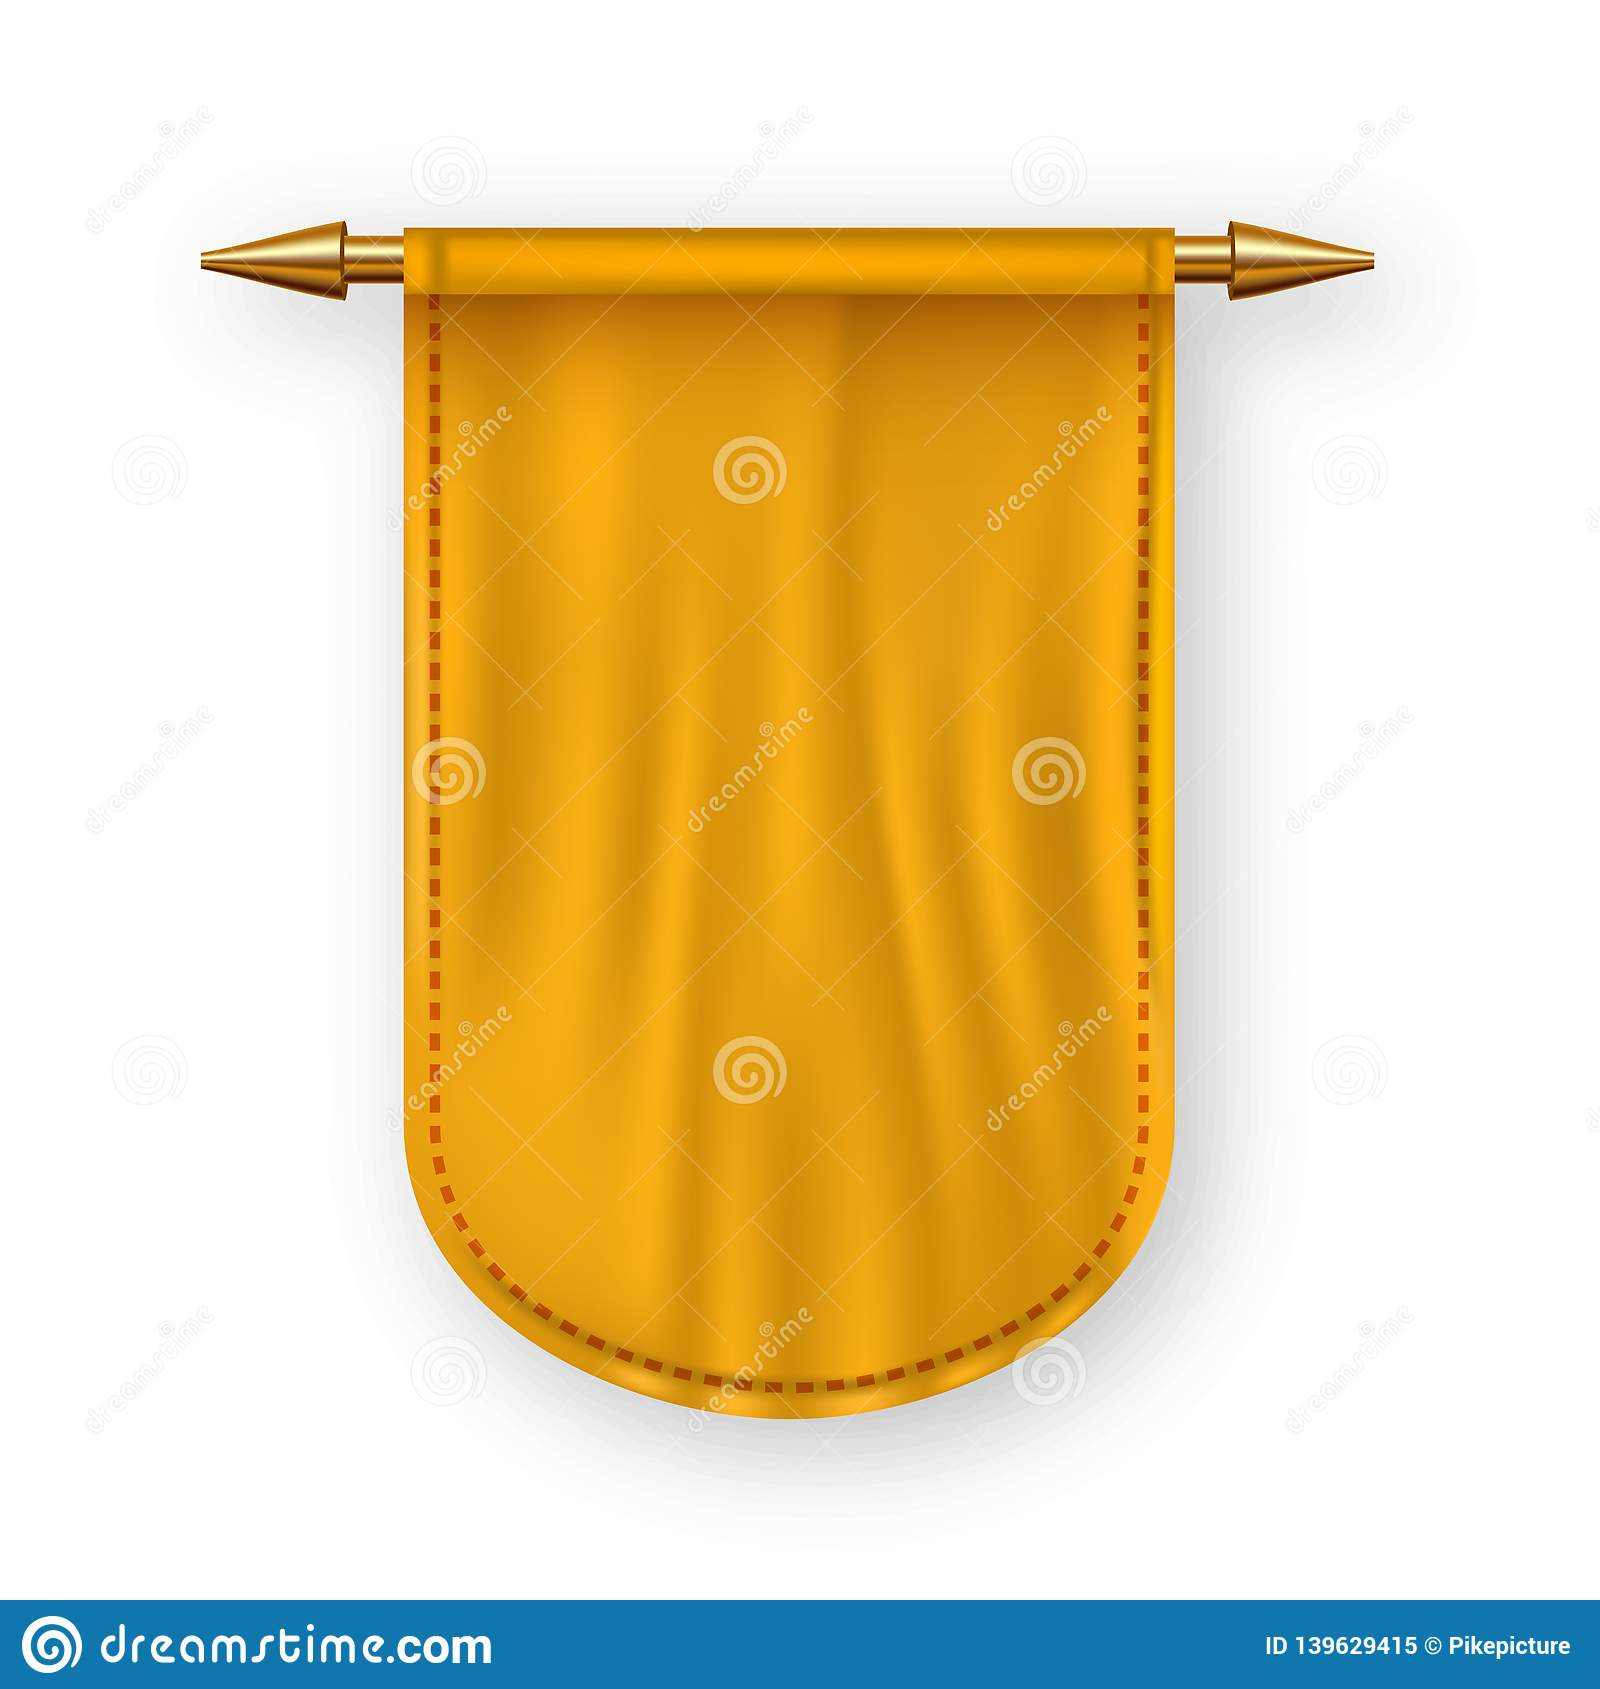 Orange Pennat Flag Vector. Advertising Canvas Banner. Hanging Wall Pennat. Heraldic 3D Realistic Isolated Illustration